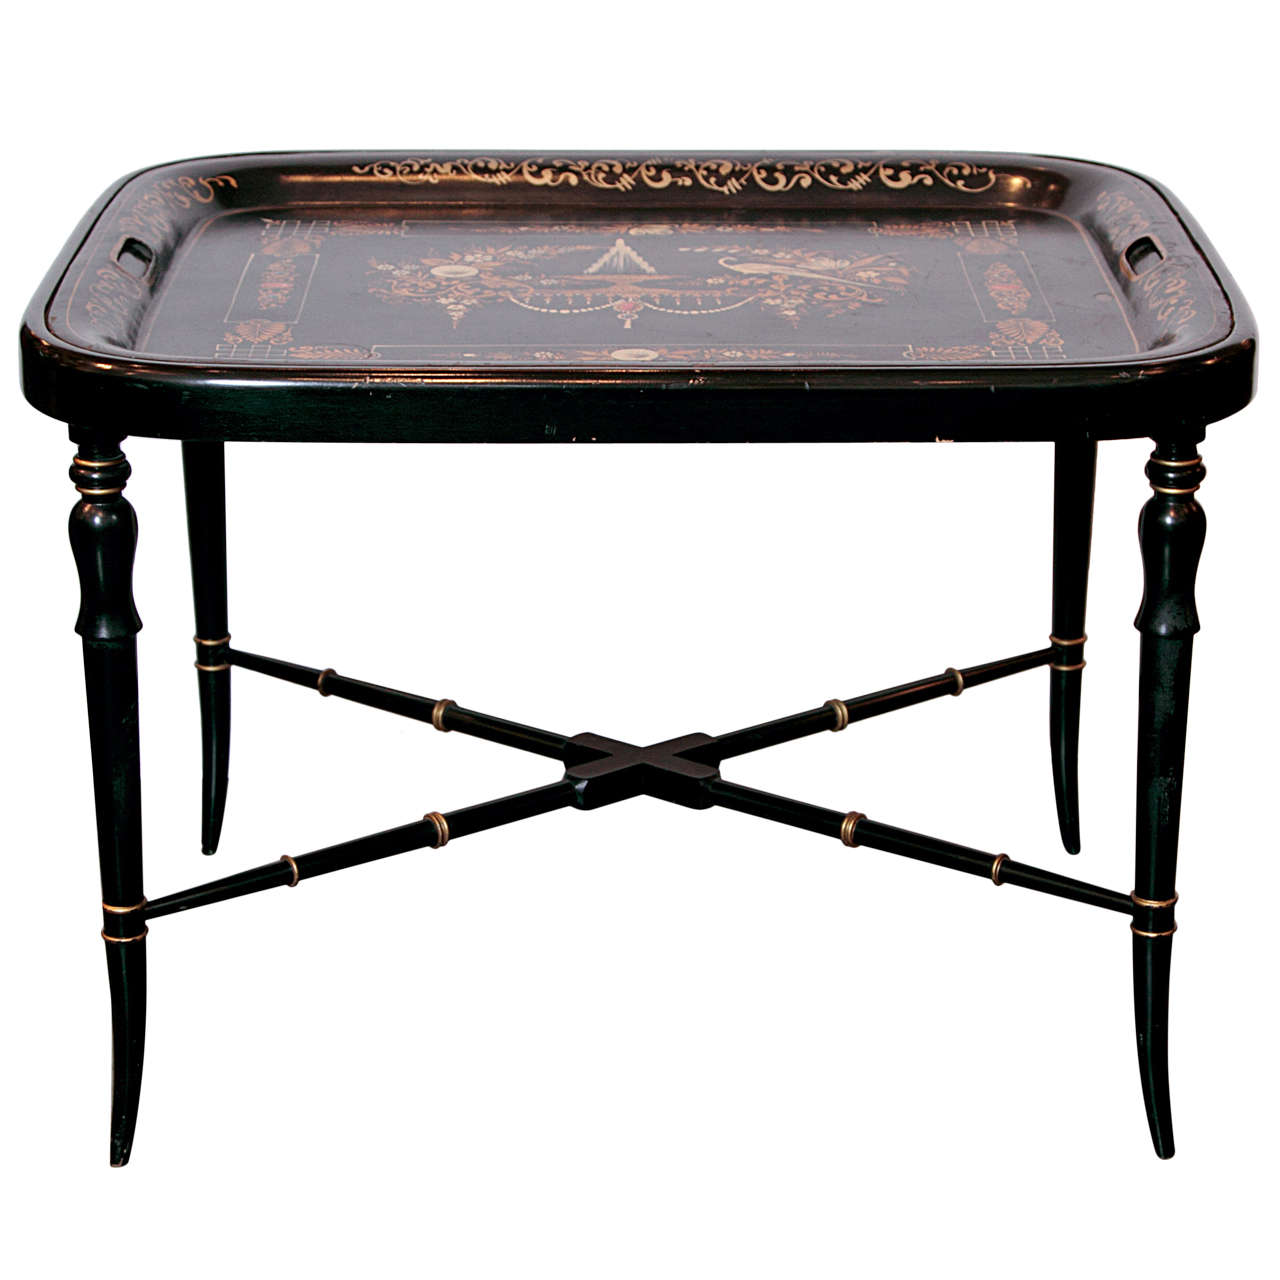 19th Century Regency, Tole Painted Tray Table